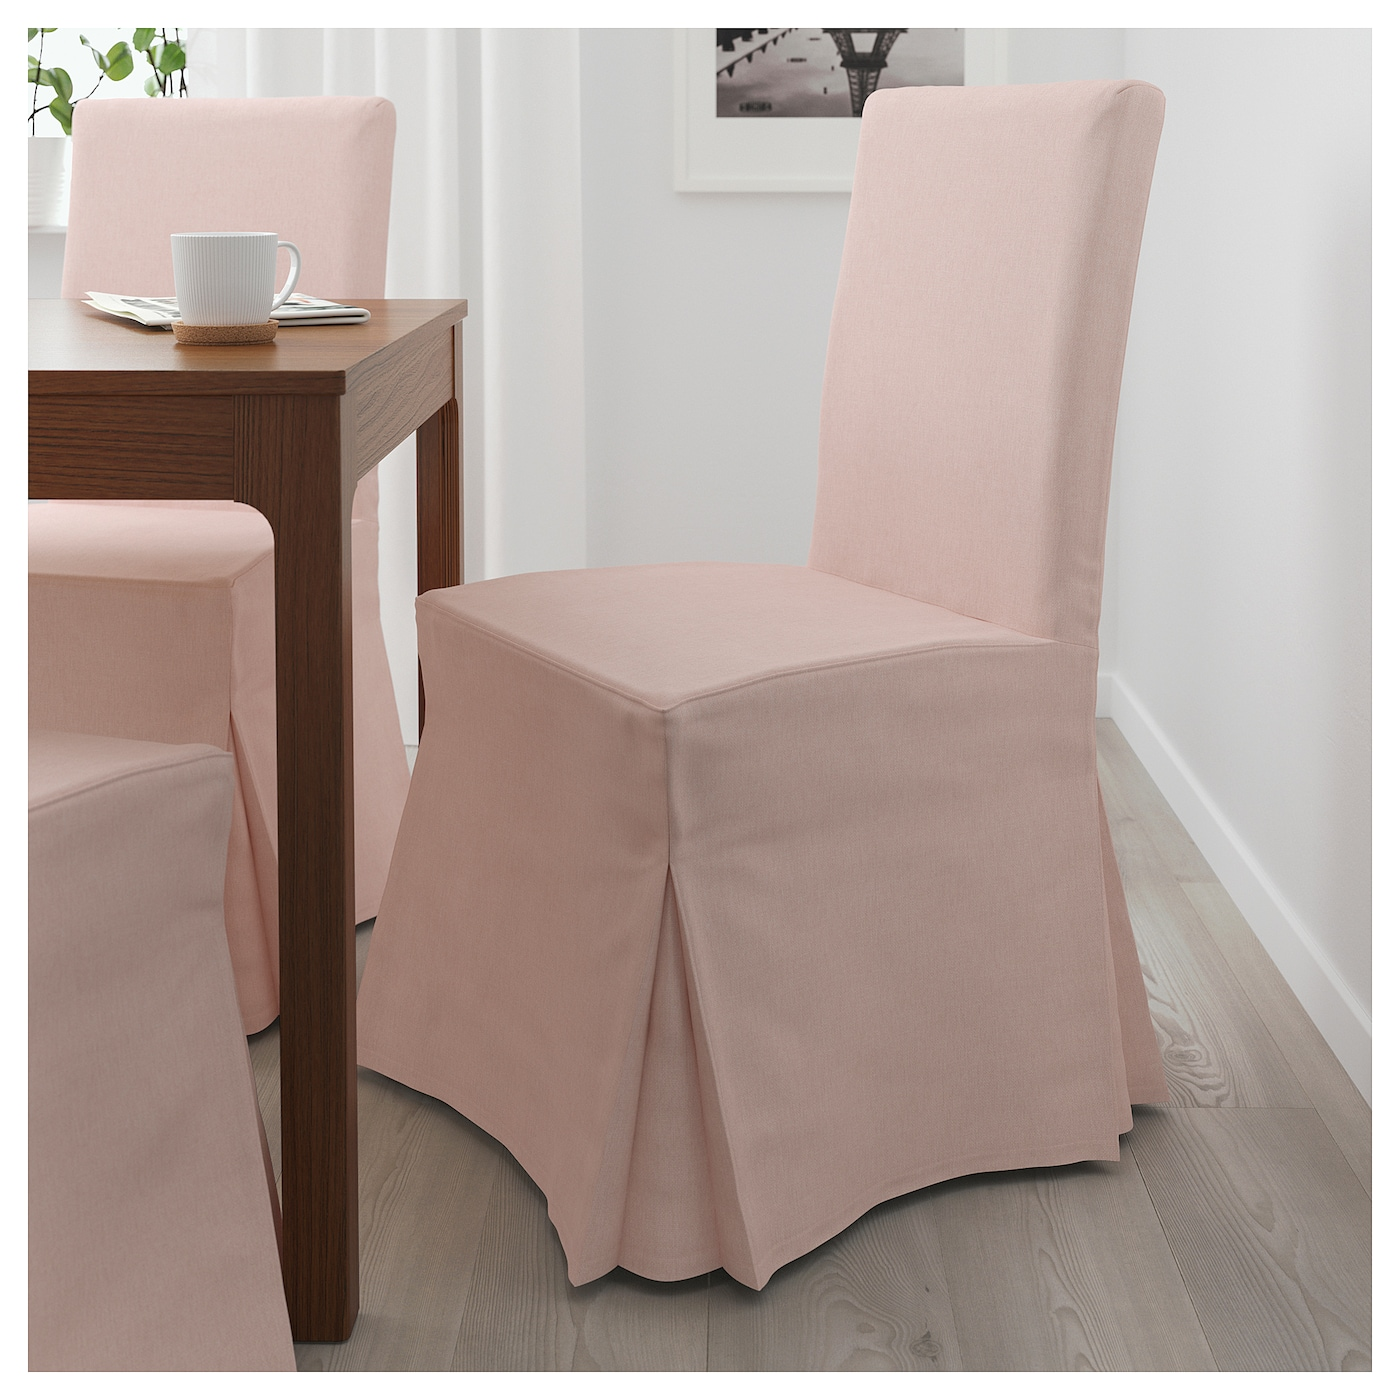 HENRIKSDAL Chair with long cover Brown gunnared pale pink IKEA